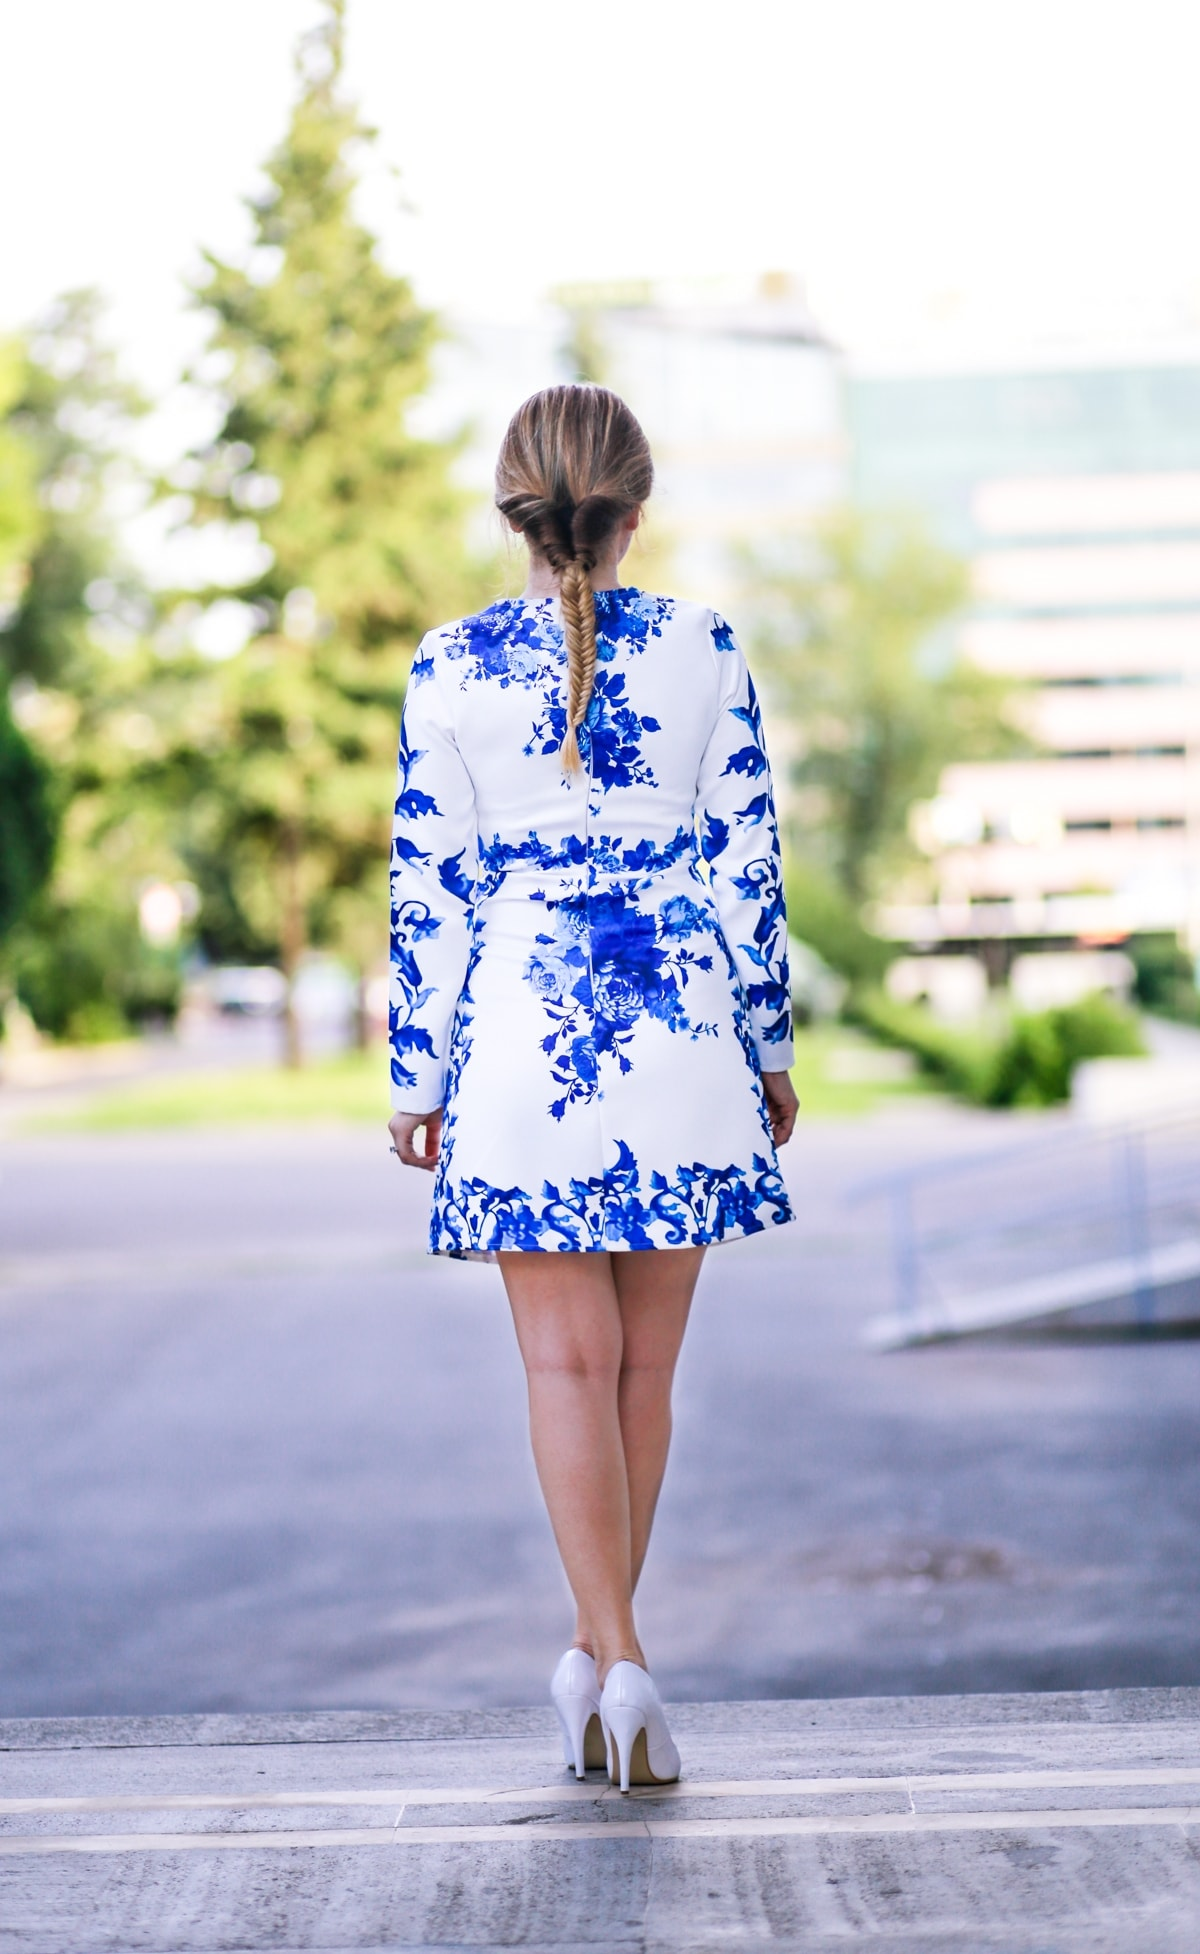 Street style - floral prind dress, white and blue, santorini inspired print